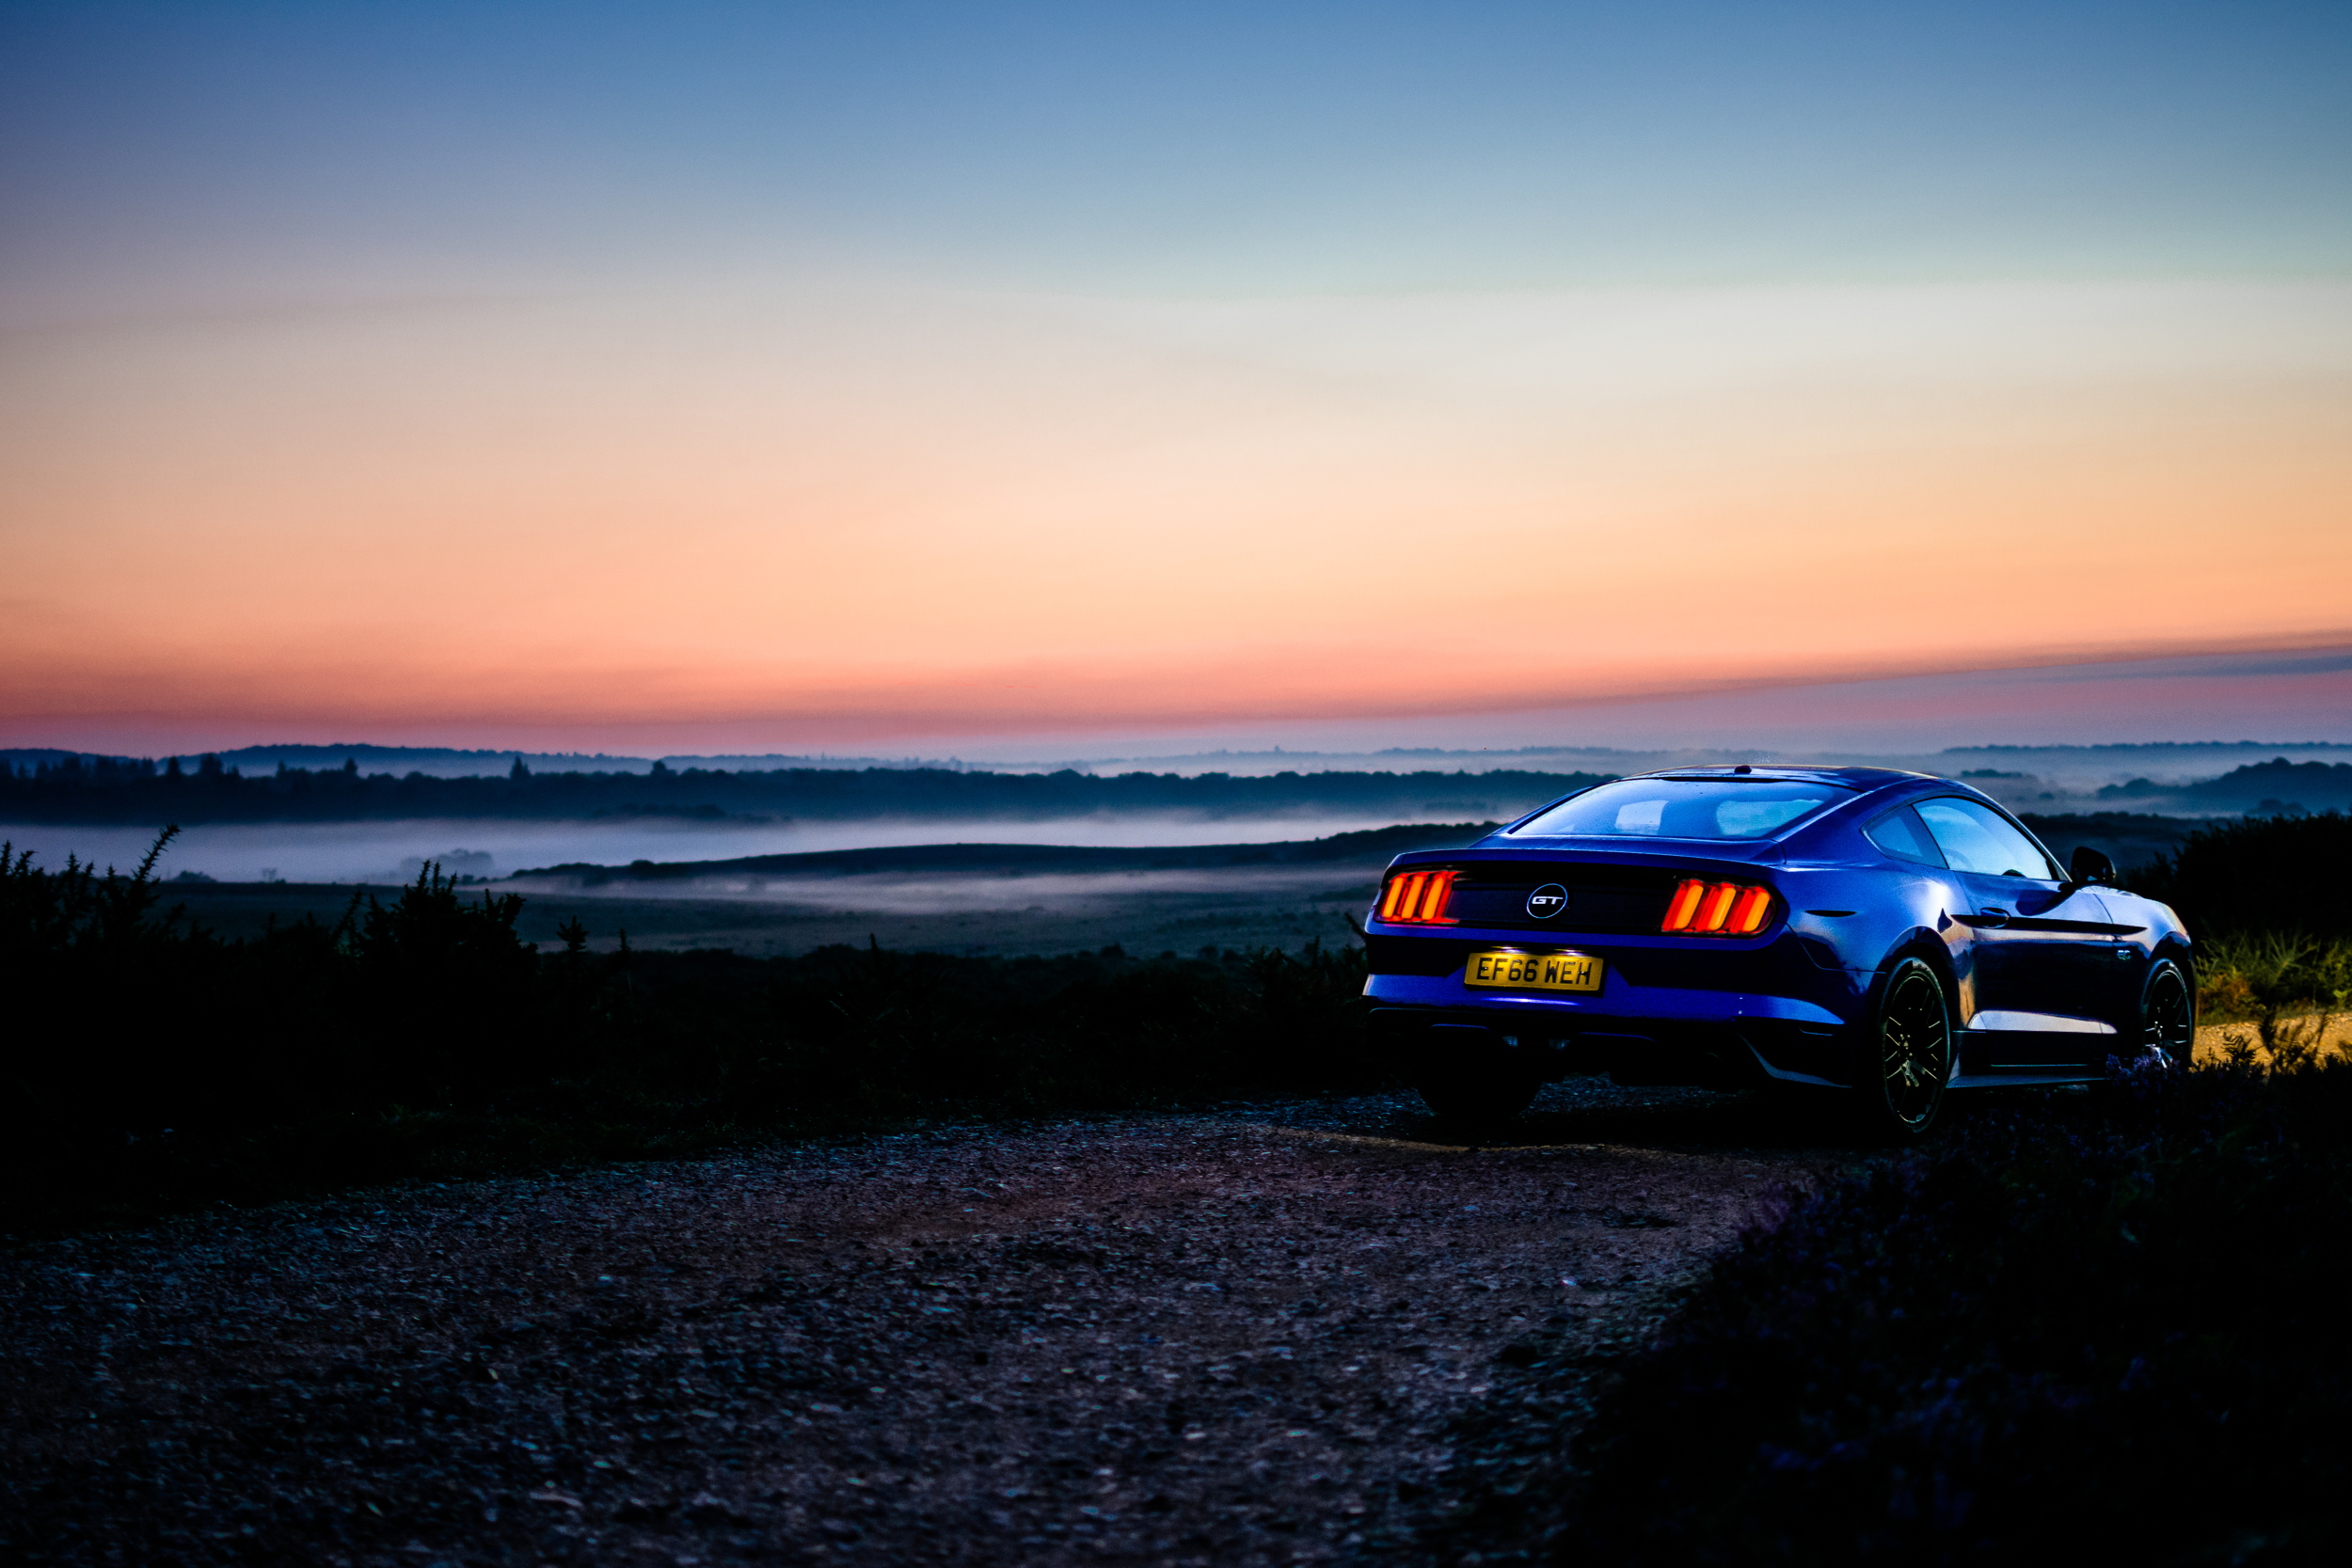 Ford Mustang sunrise